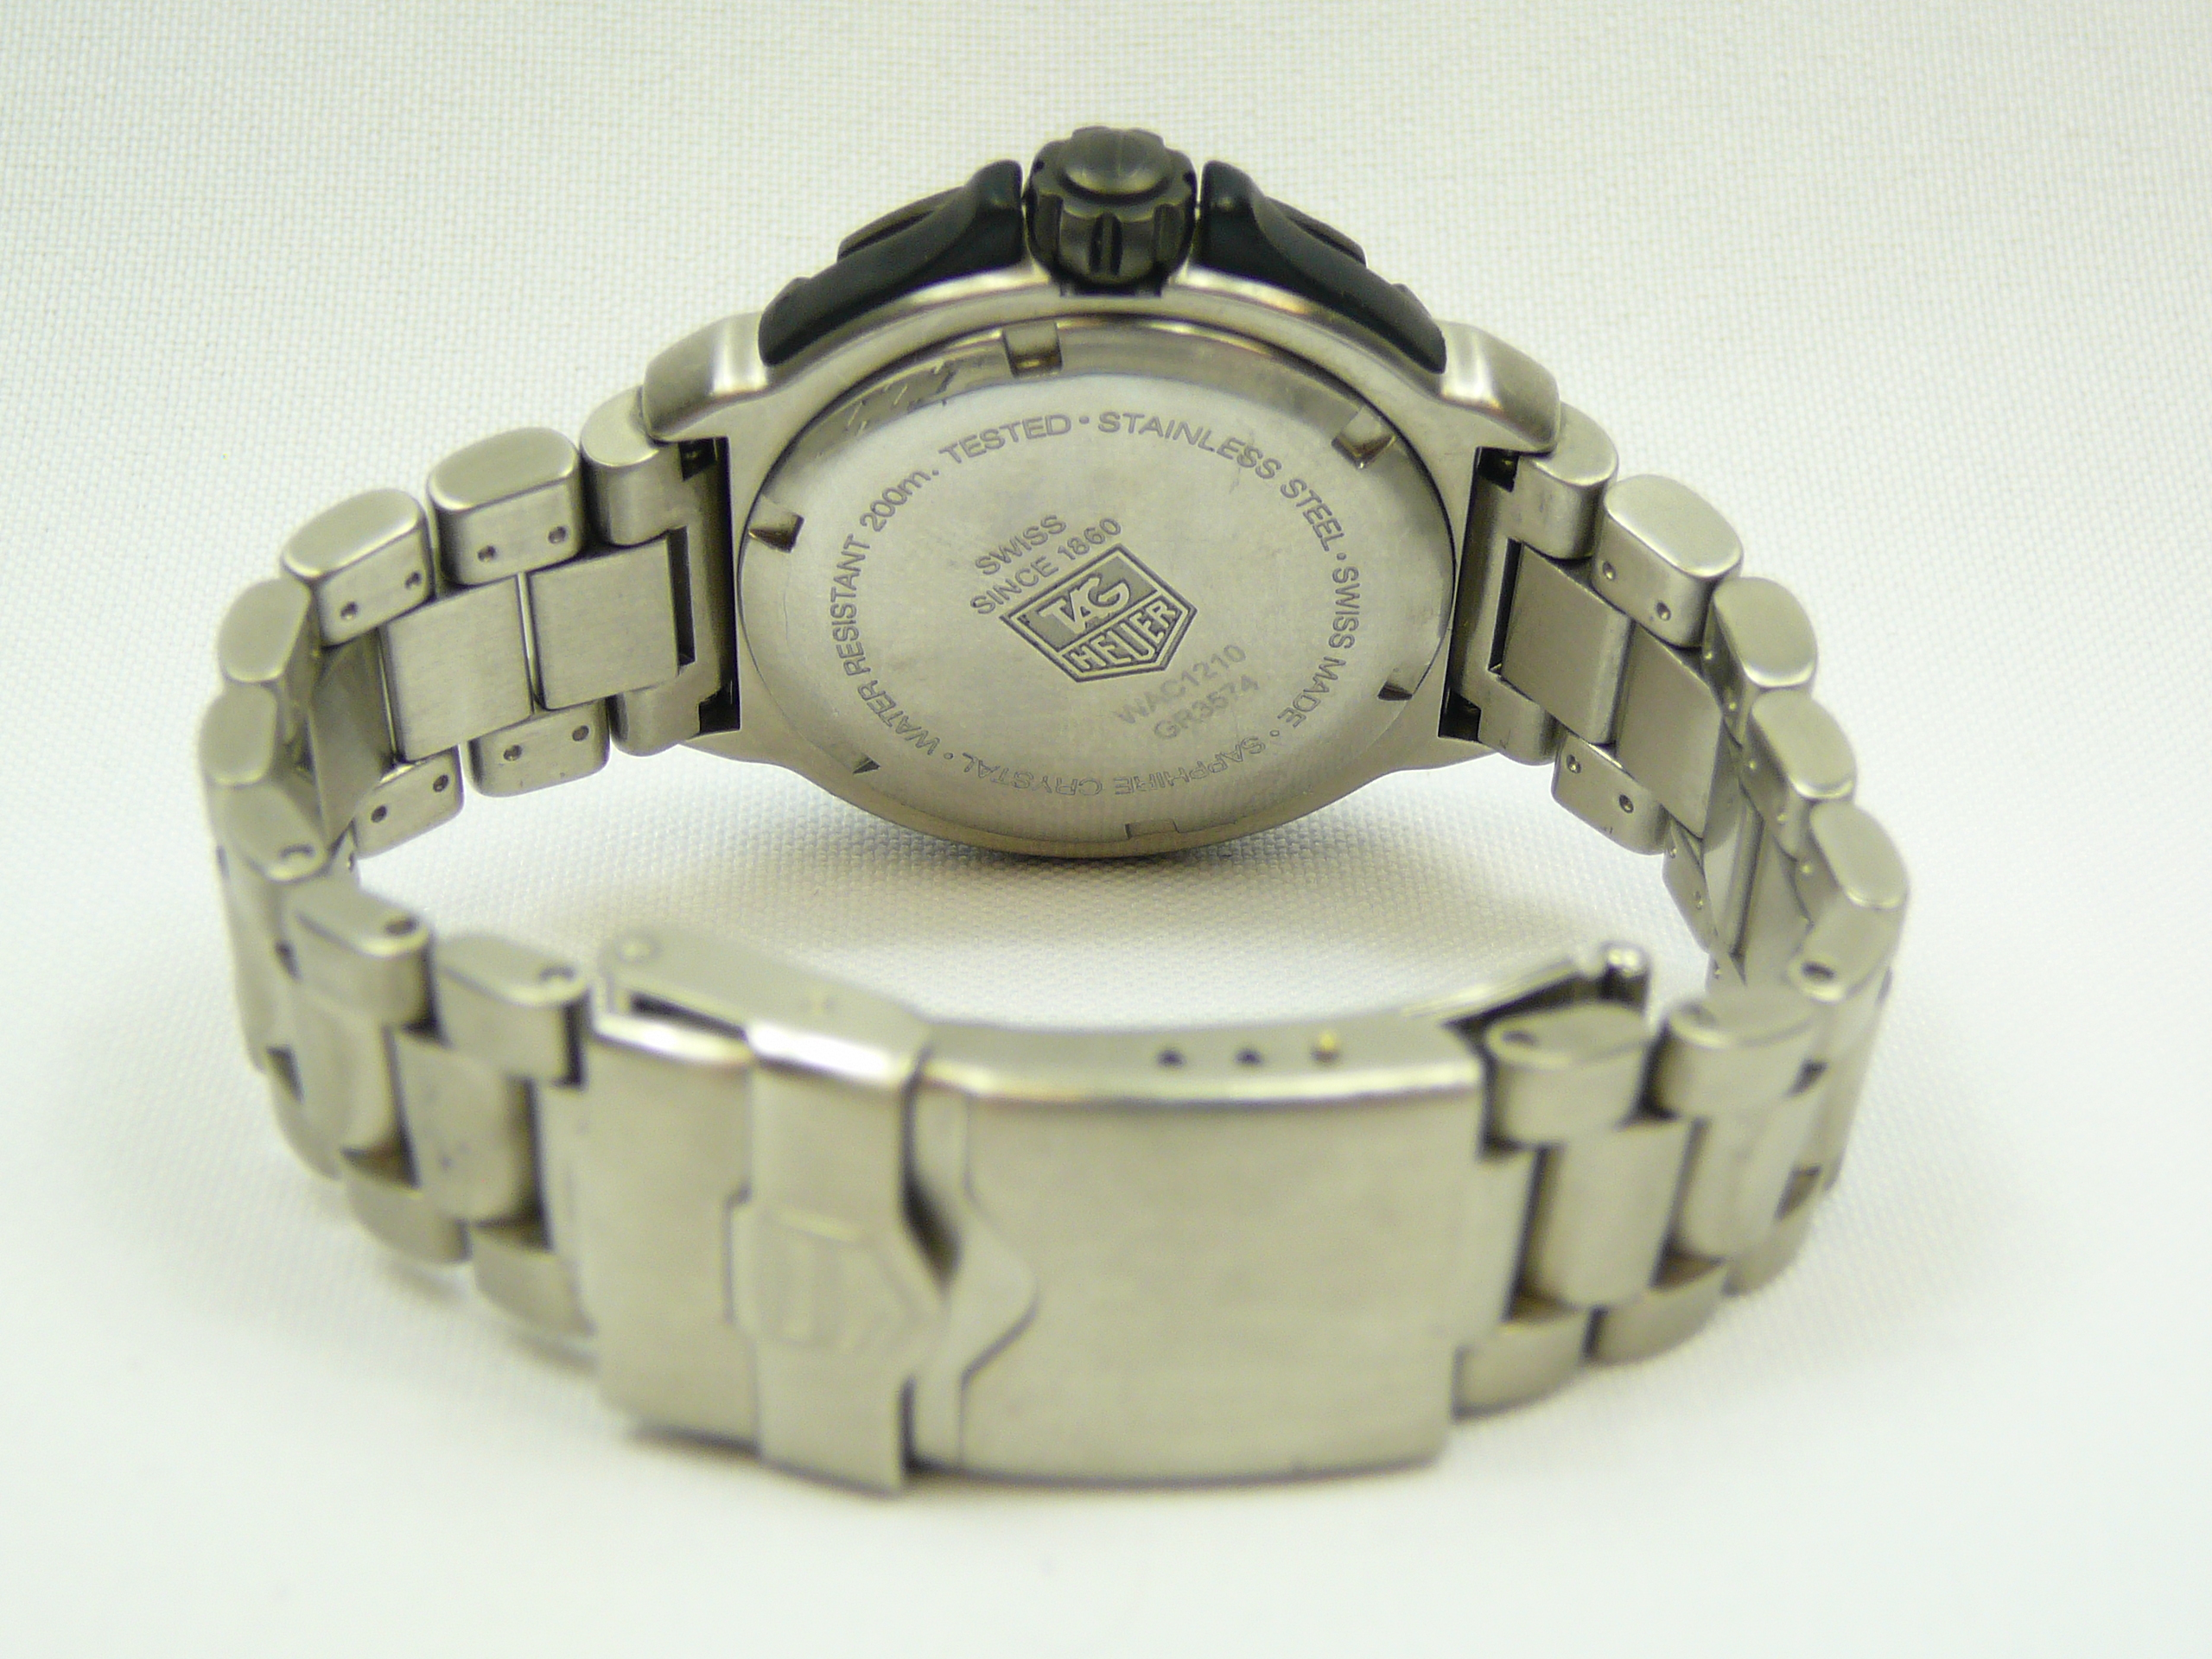 Mid Size Tag Heuer Wrist Watch - Image 3 of 3